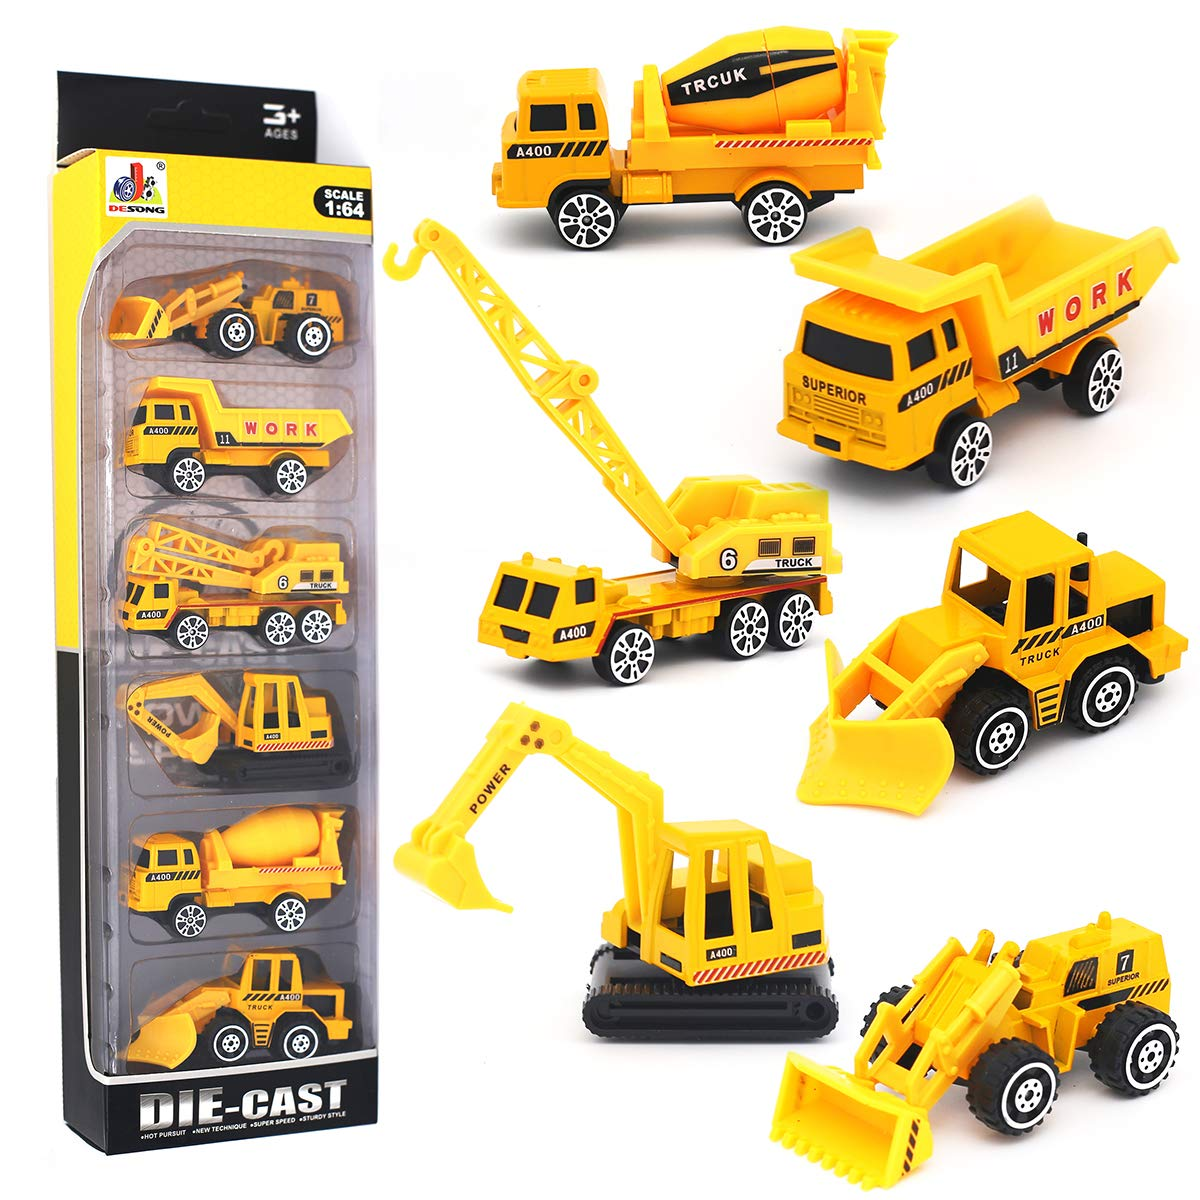 DESONG Alloy Engineering Truck Mini Pocket Size Construction Models Play Vehicles Toy for Kids Party Favors Cake Decorations Topper Birthday Gift,6Pcs Set